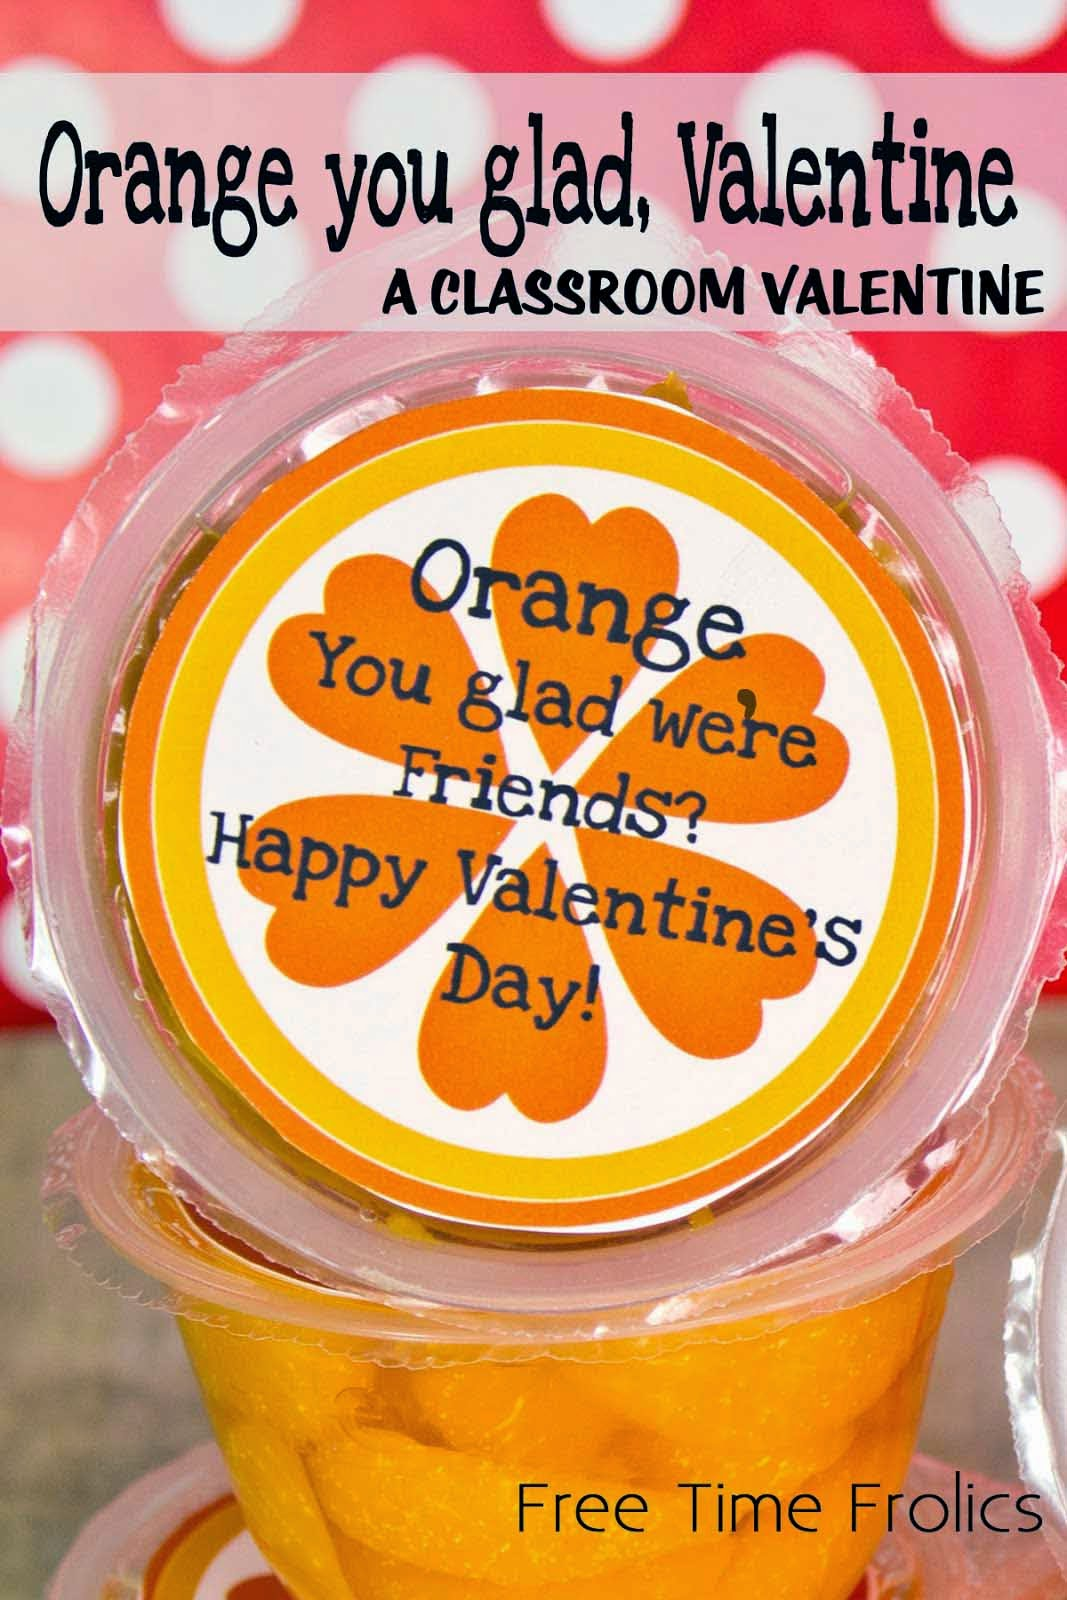 Orange you glad,  Valentine www.freetimefrolics.com classroom valentine